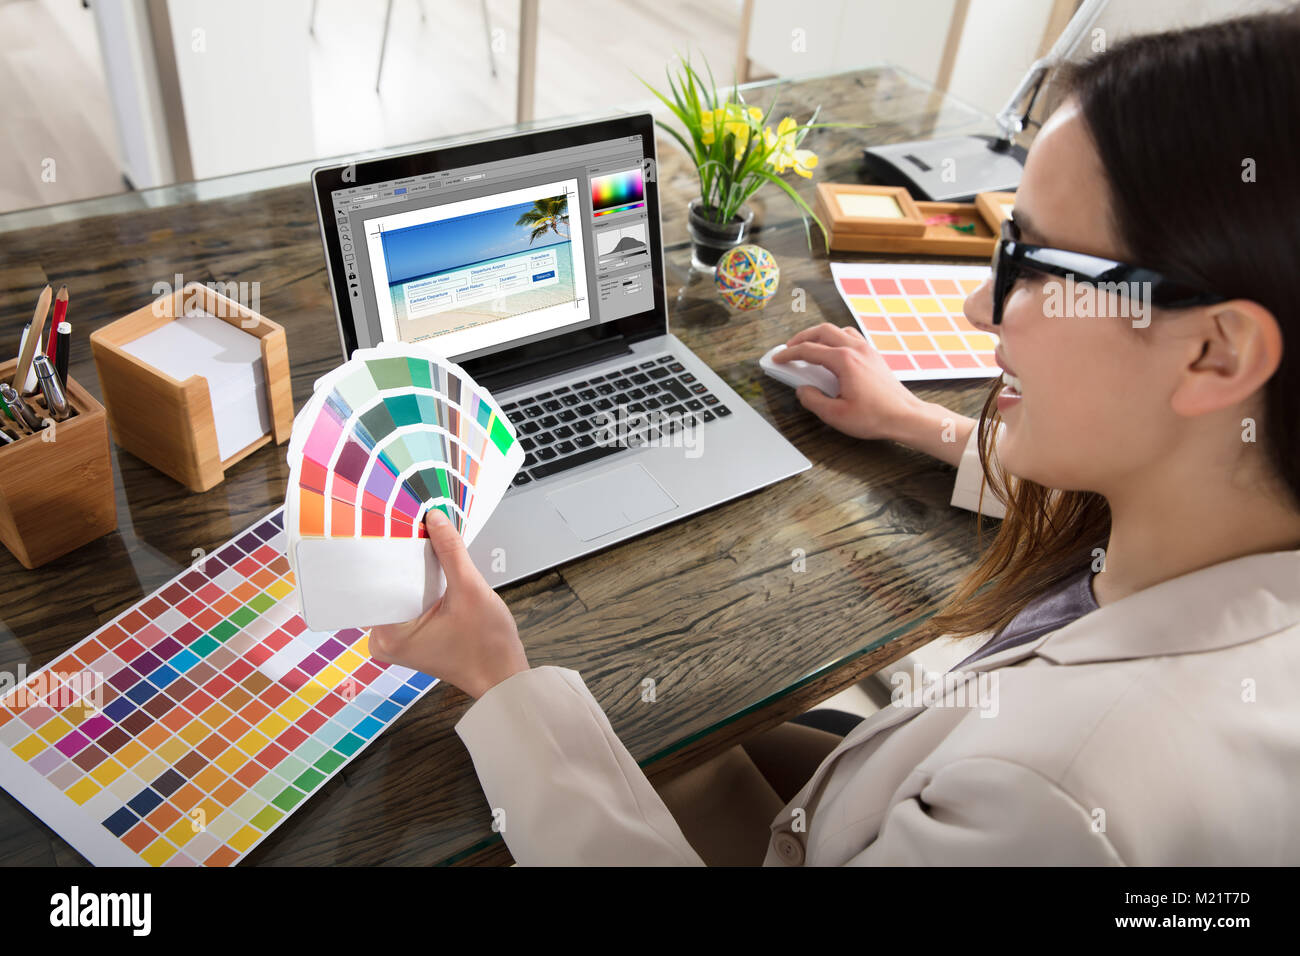 Une femme Designer Using Laptop tout en maintenant des couleurs du nuancier dans sa main Photo Stock